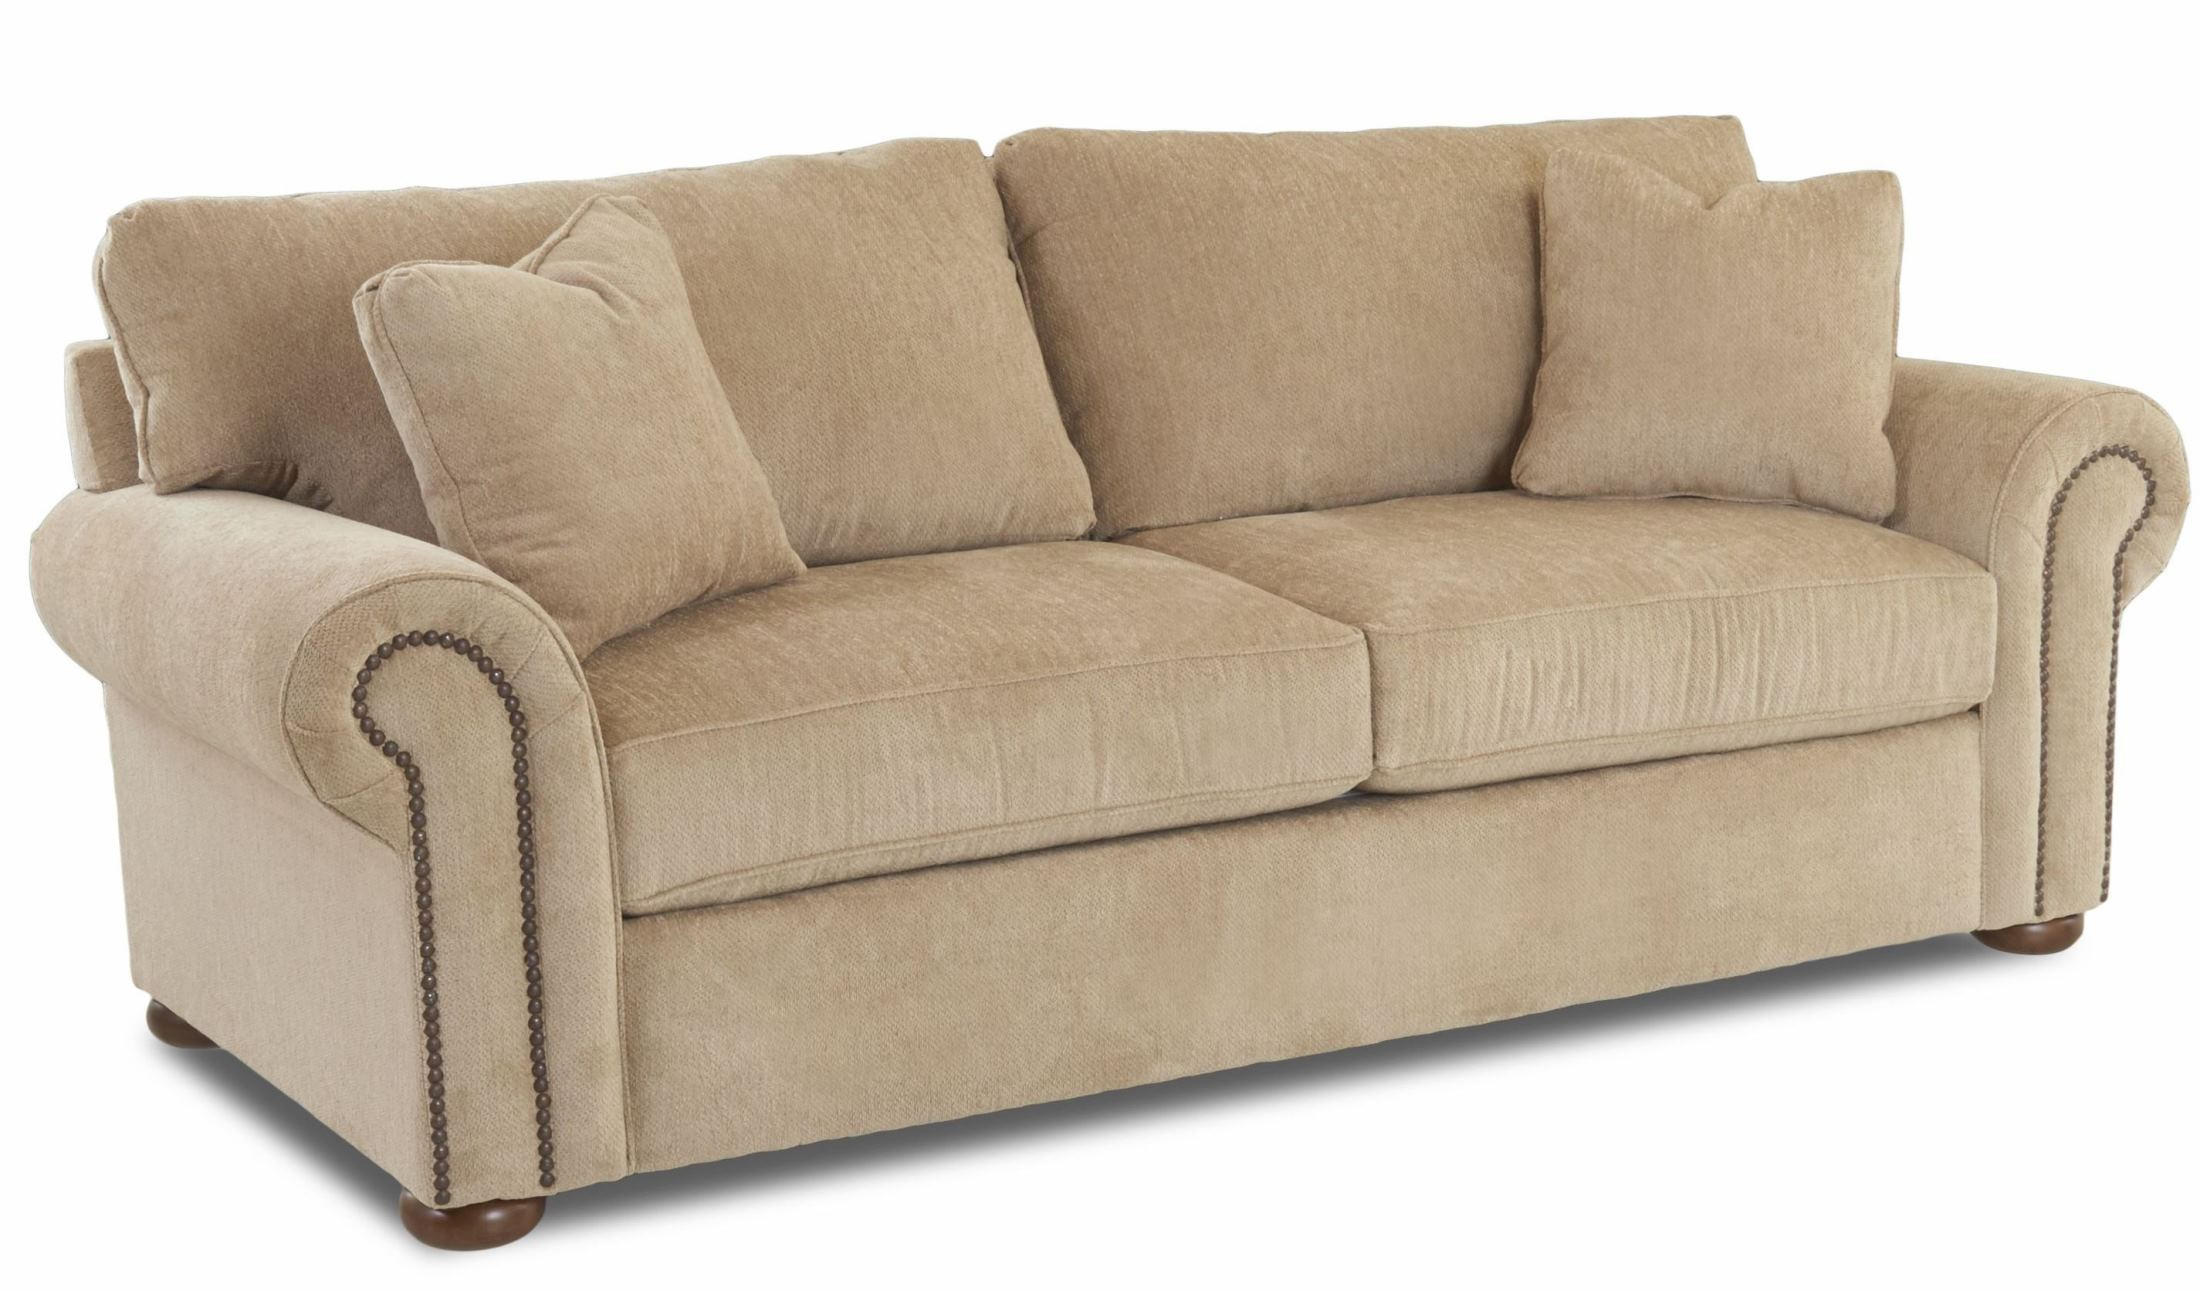 Sienna Oatmeal Furby Sofa From Klaussner Coleman Furniture